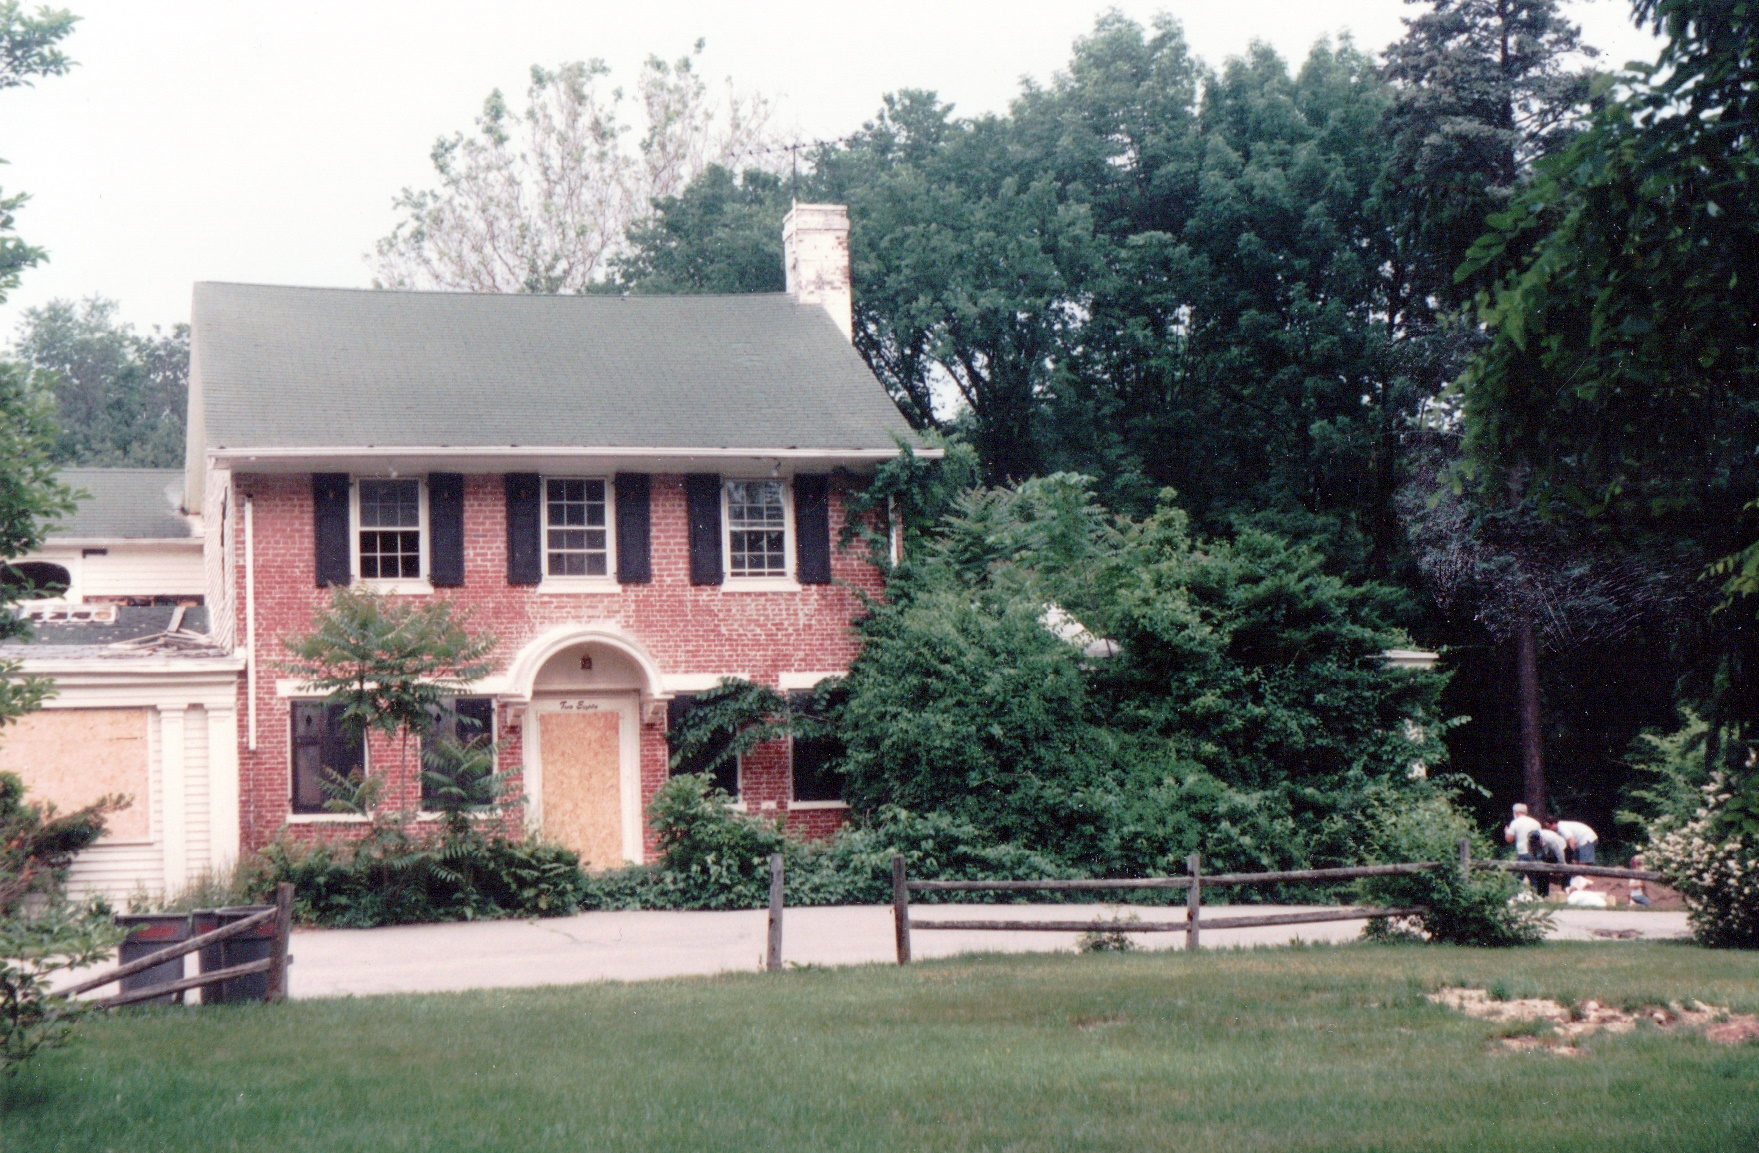 Color photograph of the Sheffield House with boarded up door and windows.